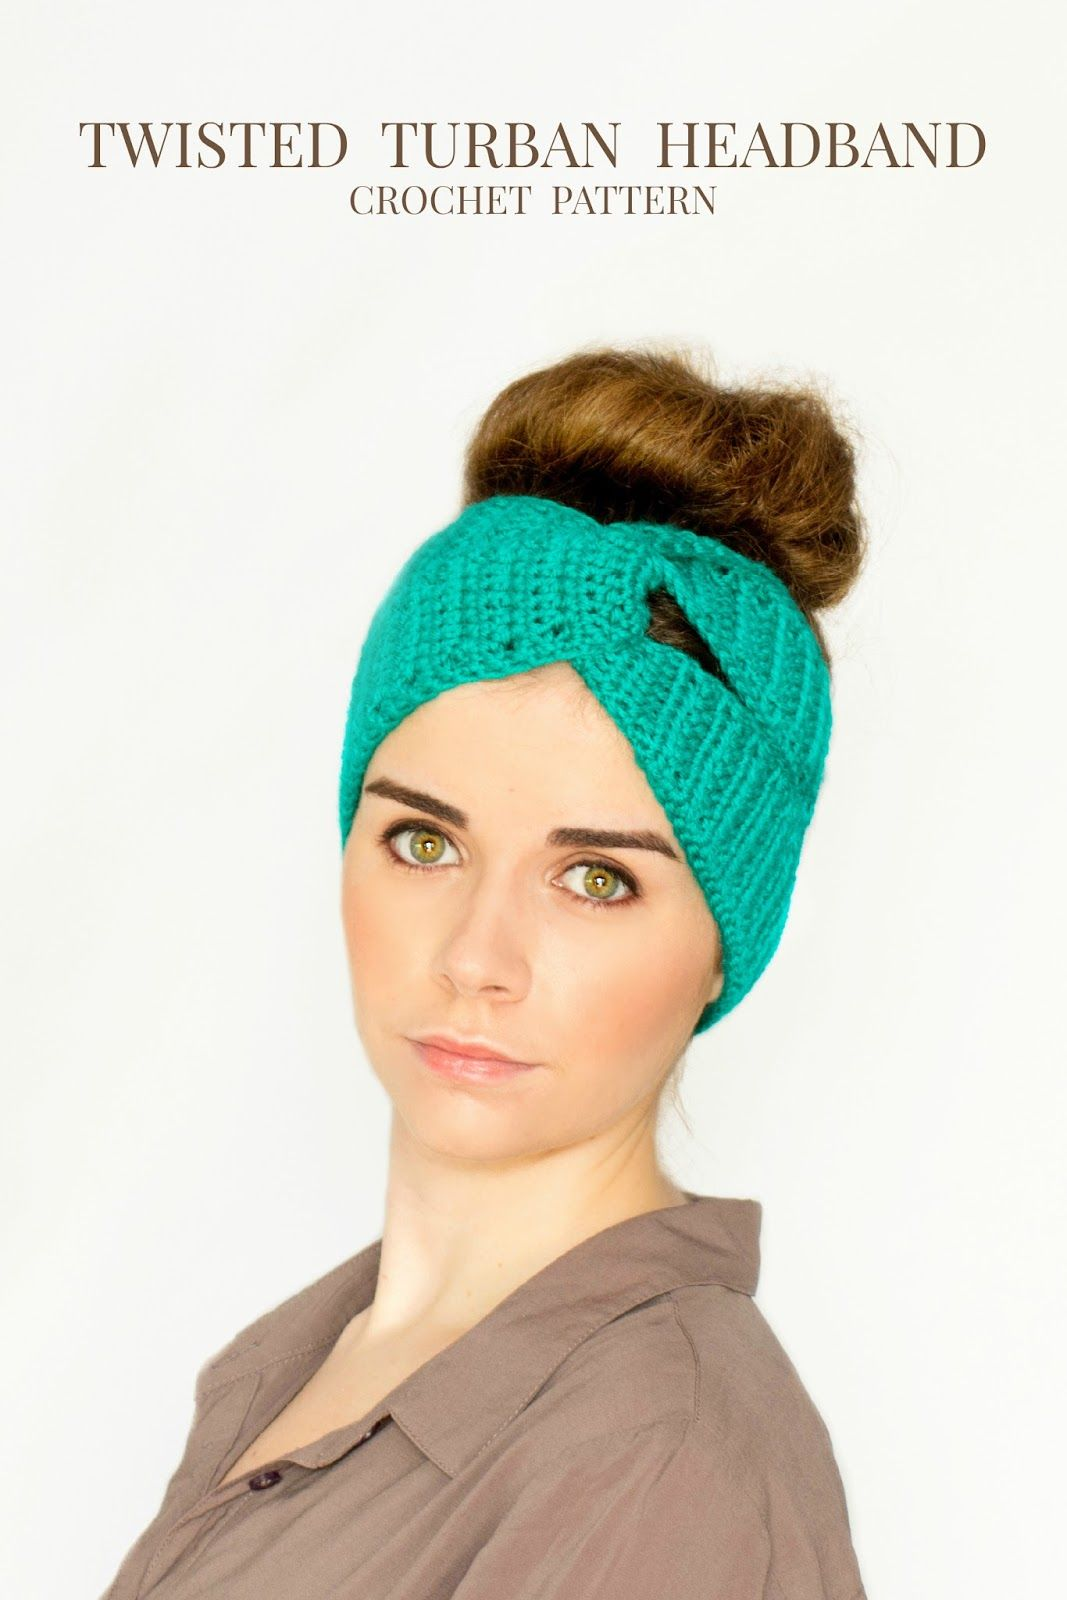 Twisted Turban Headband Crochet Pattern | Pinterest | Häckeln ...